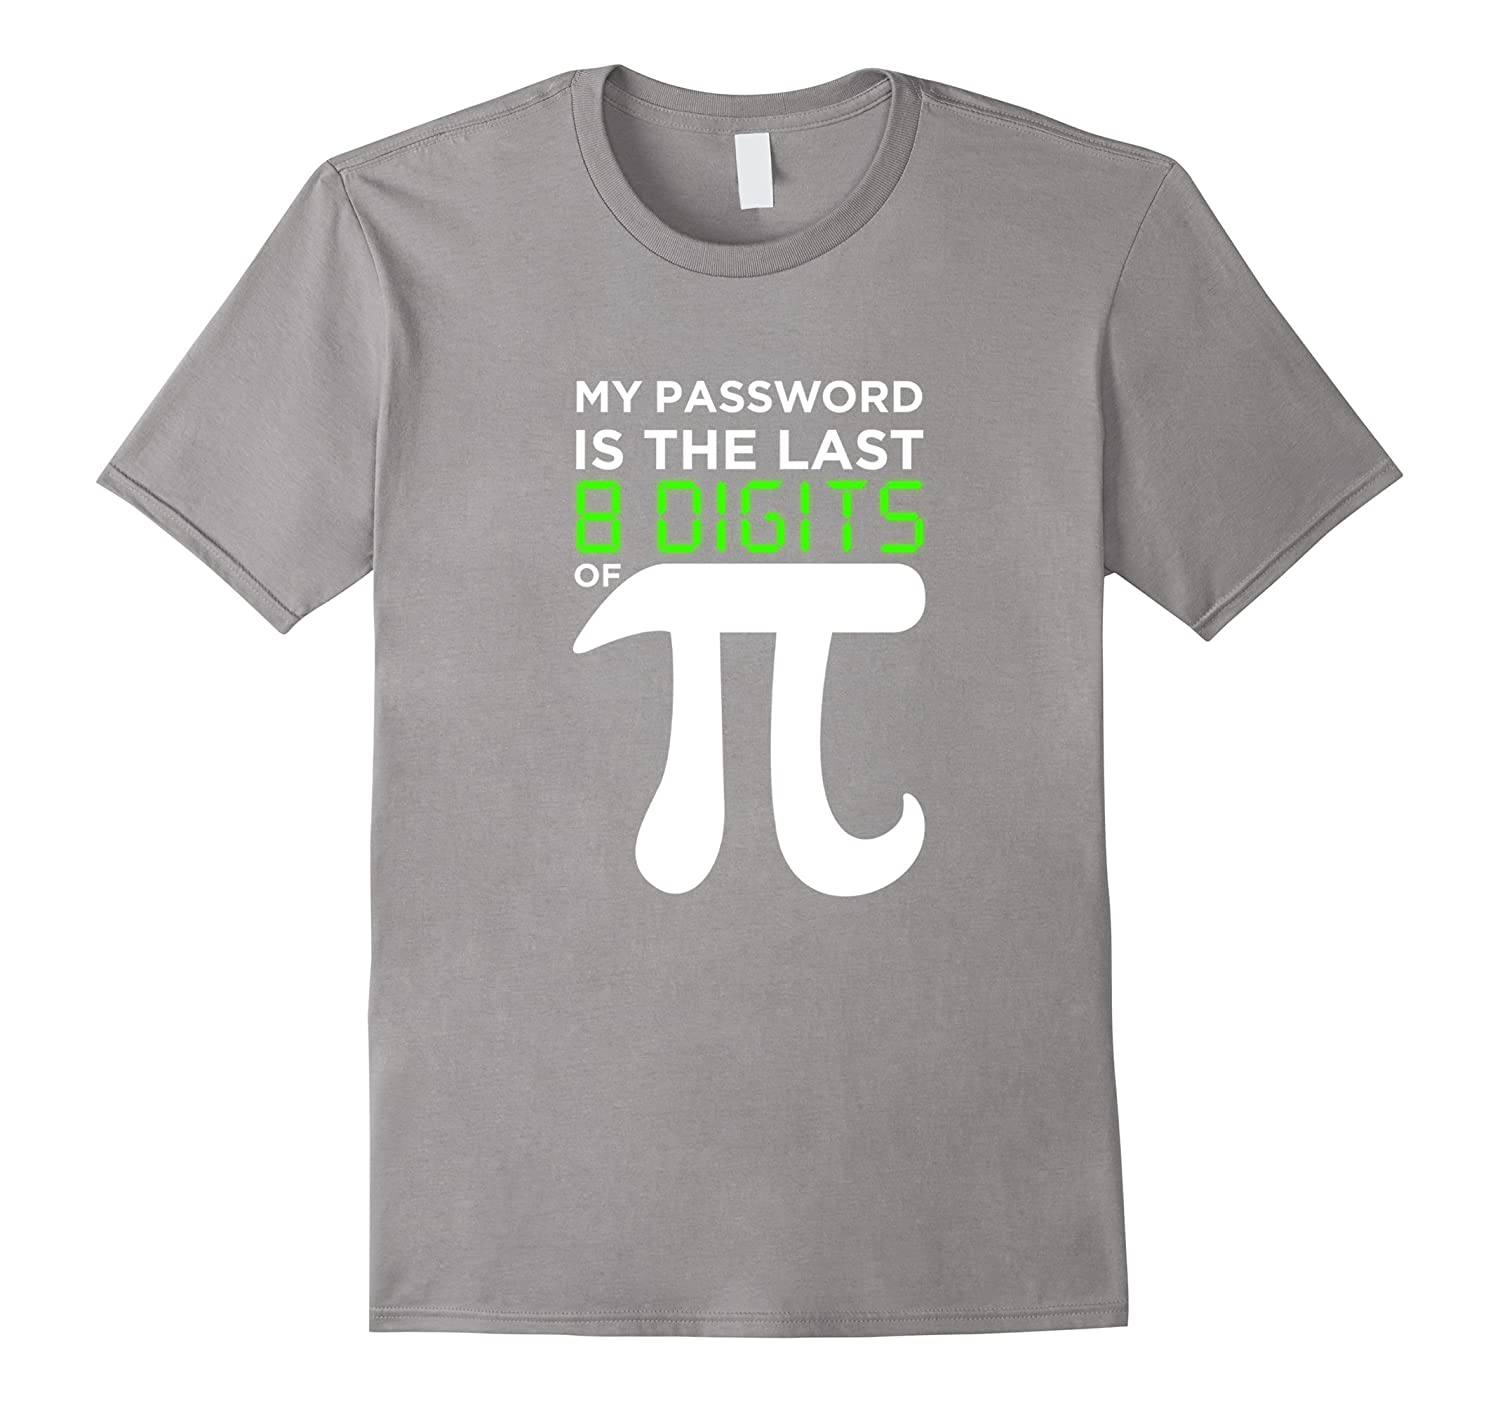 19a1ab8d9 My Password Is The Last 8 Digits of Pi Funny Math Joke T-Shirt-RT ...